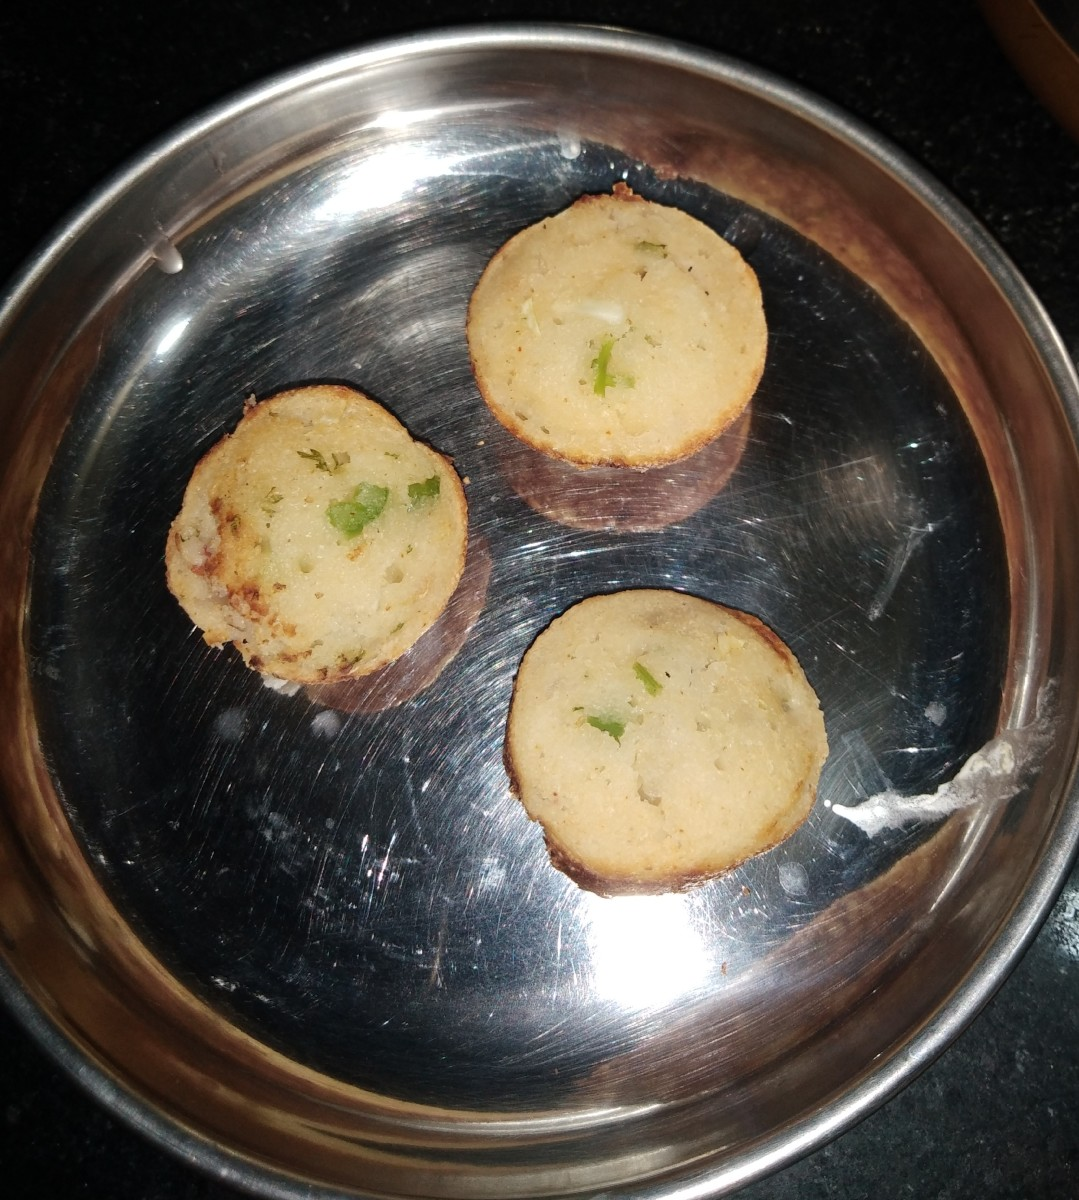 The finished rava vegetable paddu.